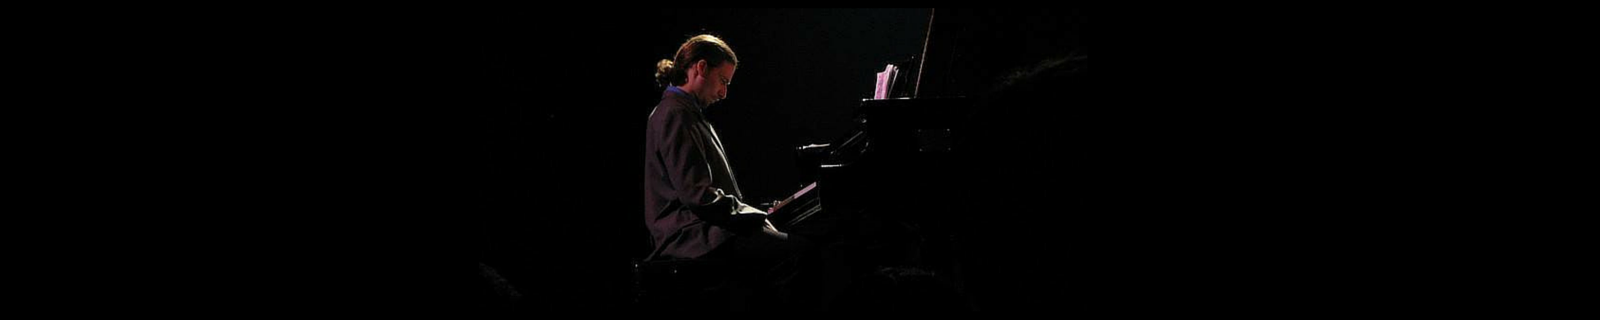 Grant-Levin-Pianist-San-Francisco